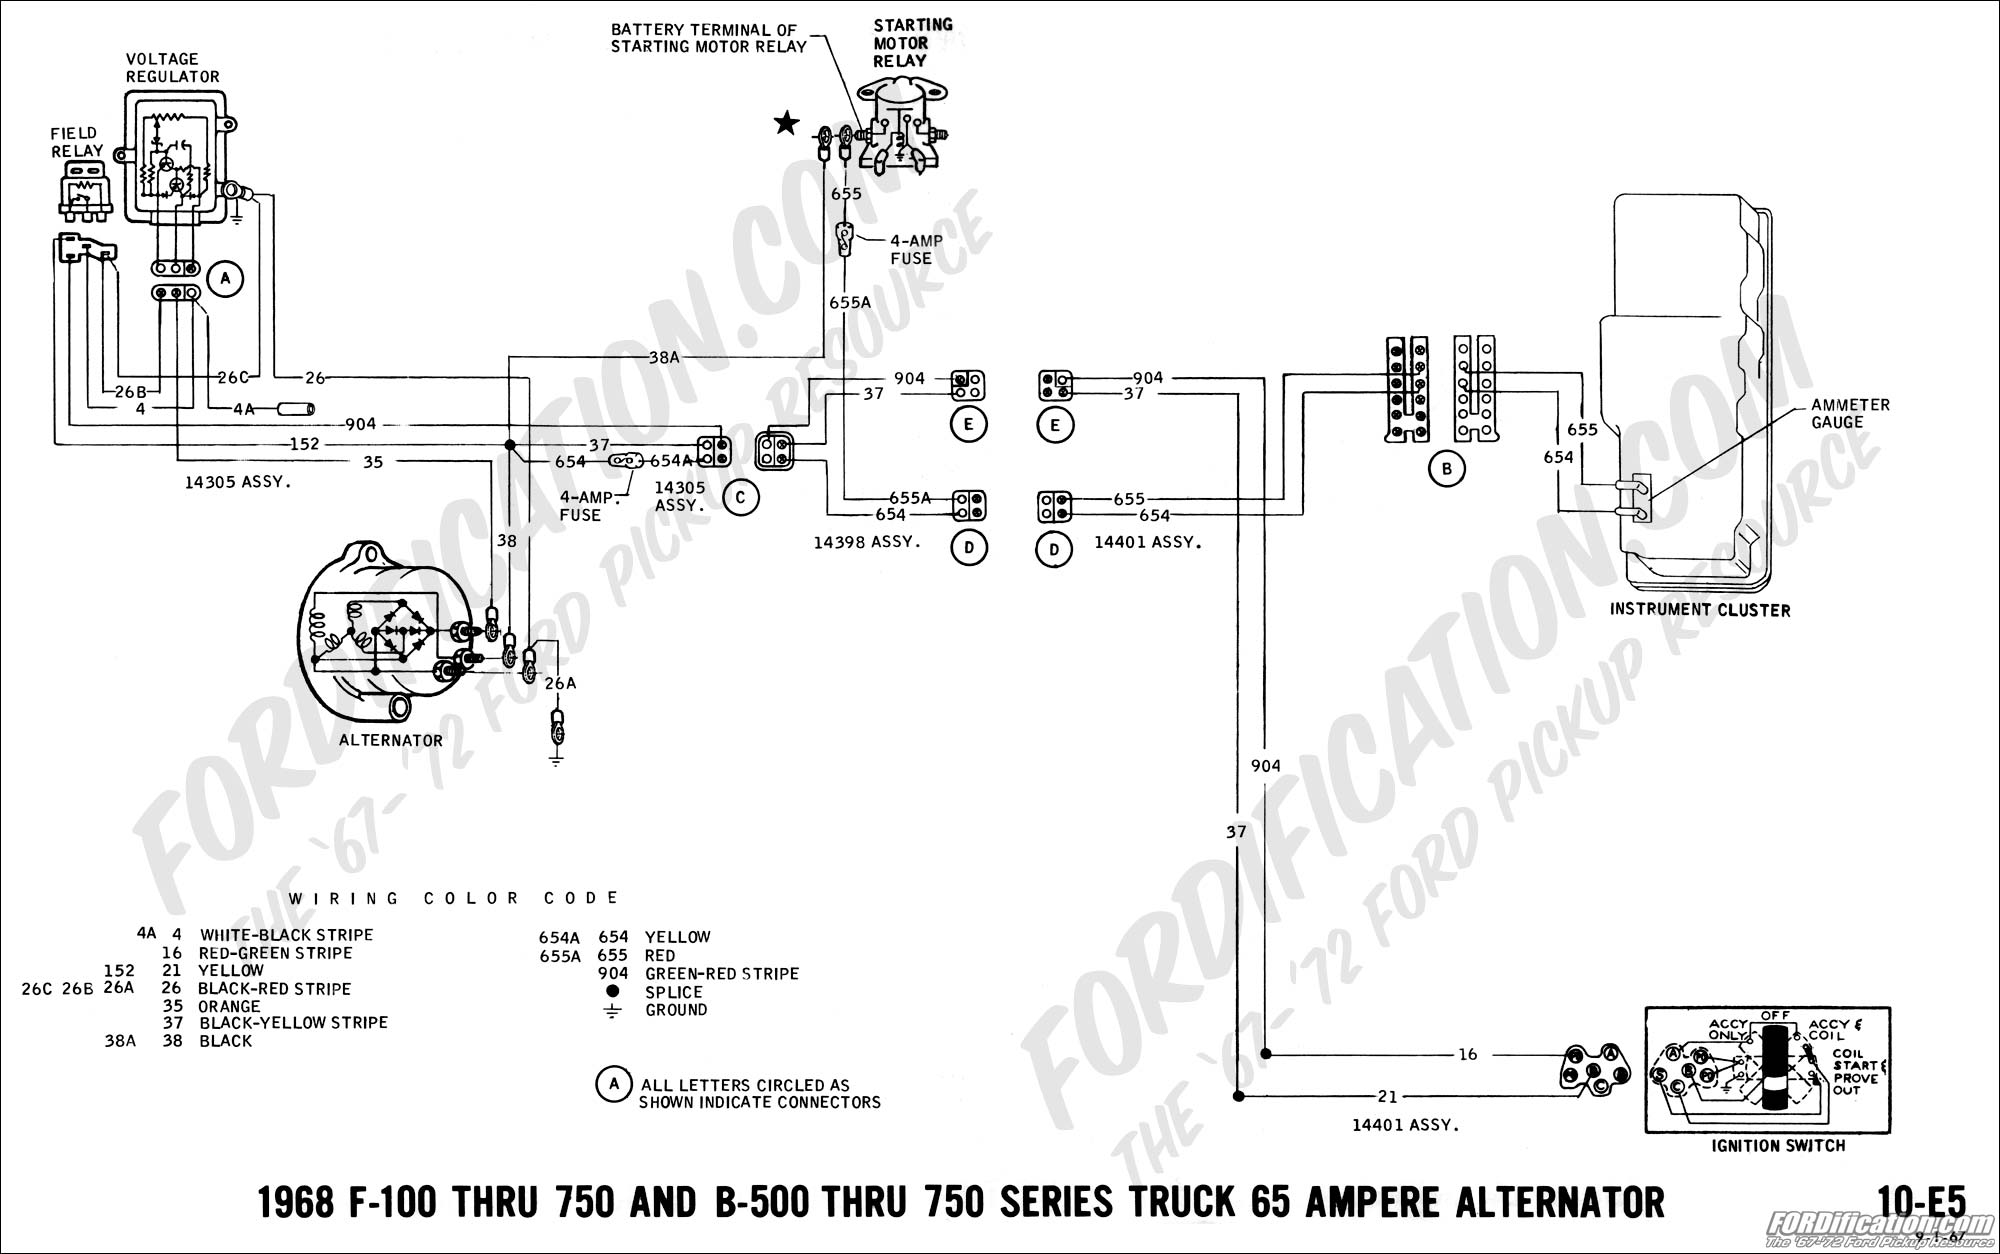 Ford Truck Technical Drawings And Schematics Section H Wiring 2006 Ford Truck Wiring Diagram 2004 Ford F 650 Wiring Diagrams On 1968 F 100 Thru F 750 And B 500 Thru F 750 65 Amp Alternator